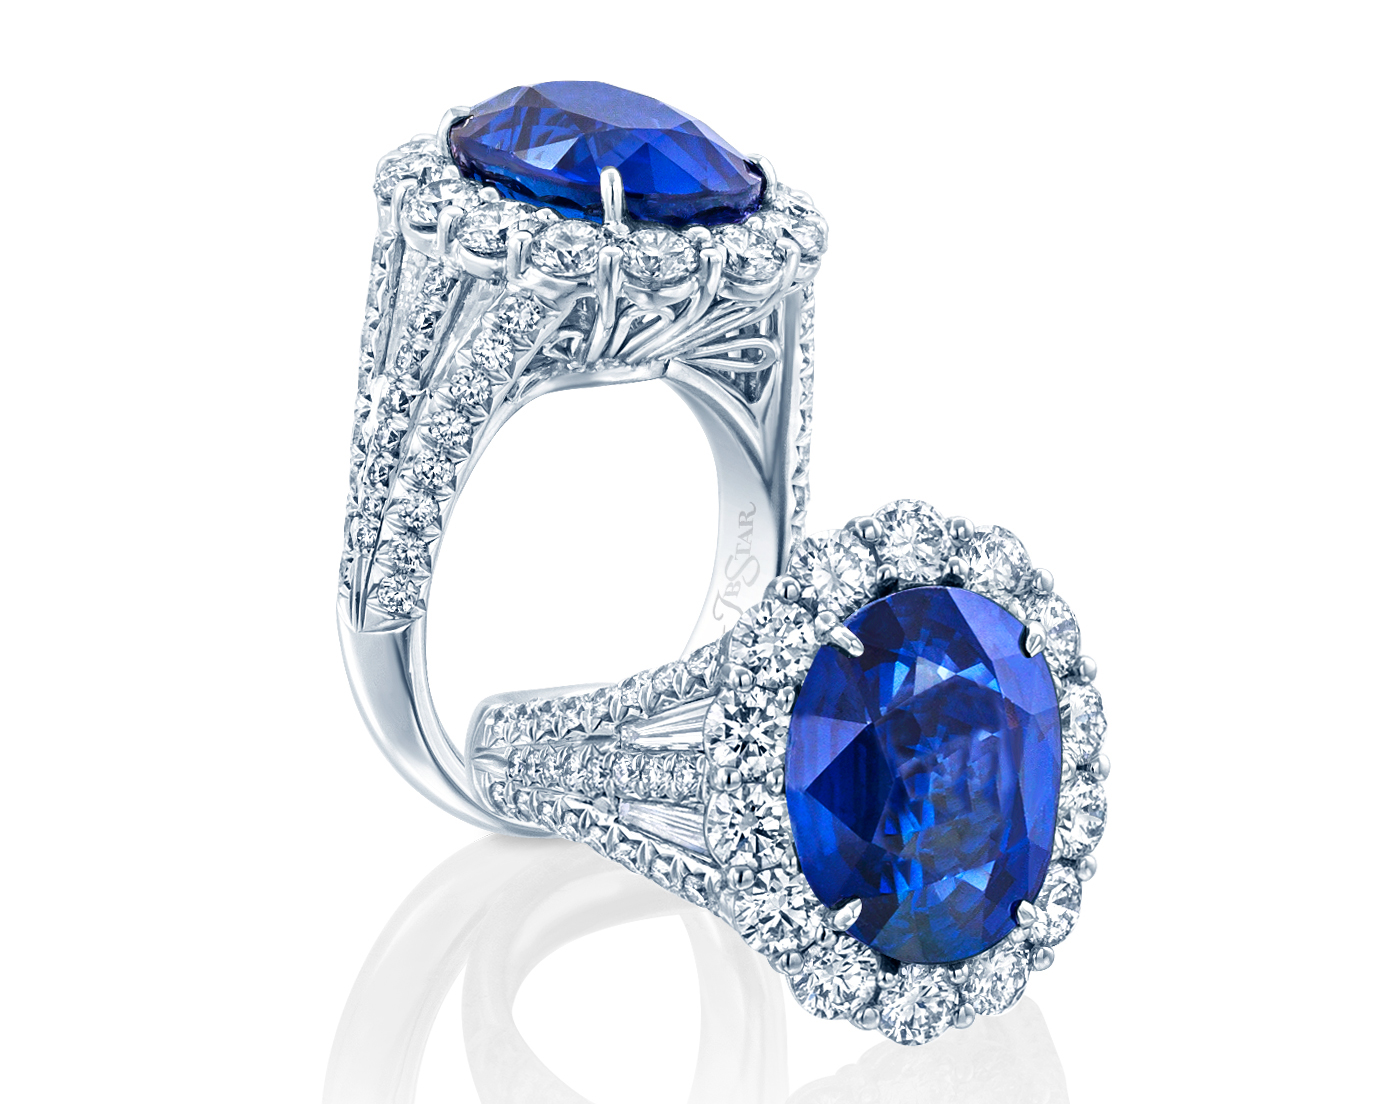 JB Star Gubelin sapphire and diamond ring | JCK On Your Market